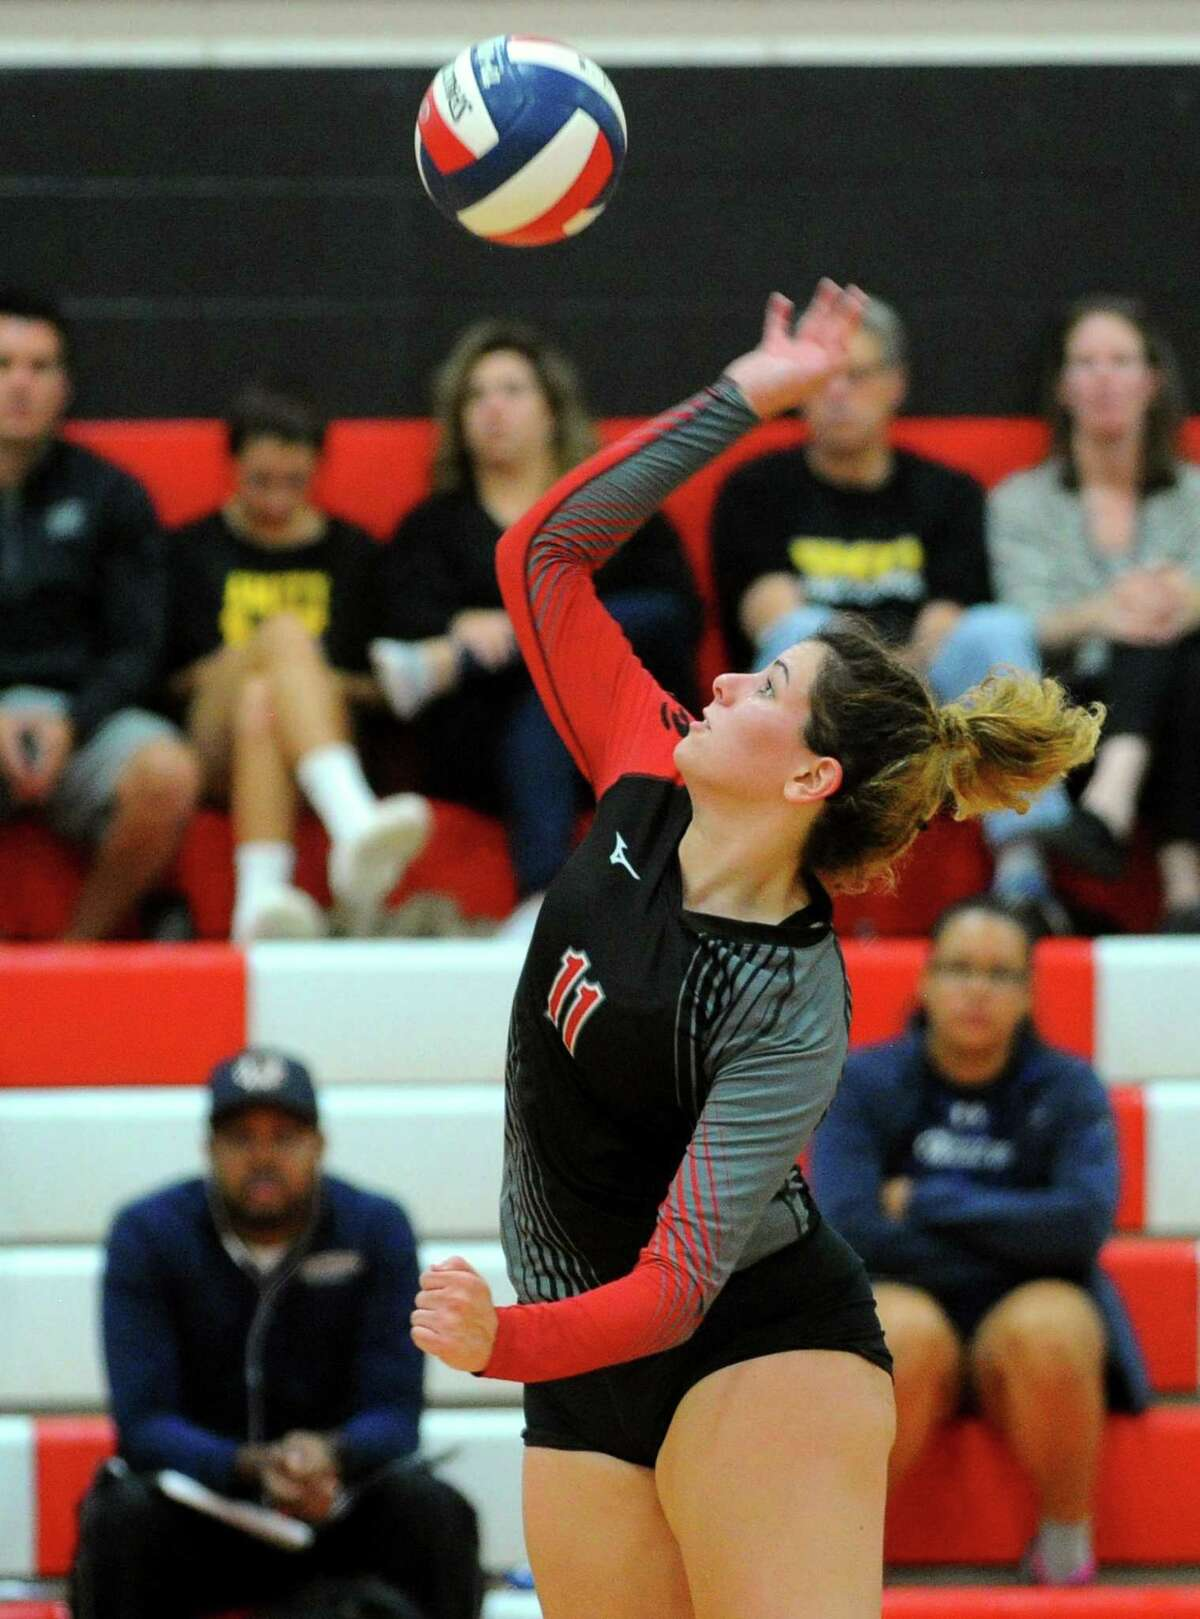 Cheshire's Julia Bartiet spikes the ball during girls volleyball action against Amity in Cheshire, Conn., on Thursday Sept. 19, 2019.